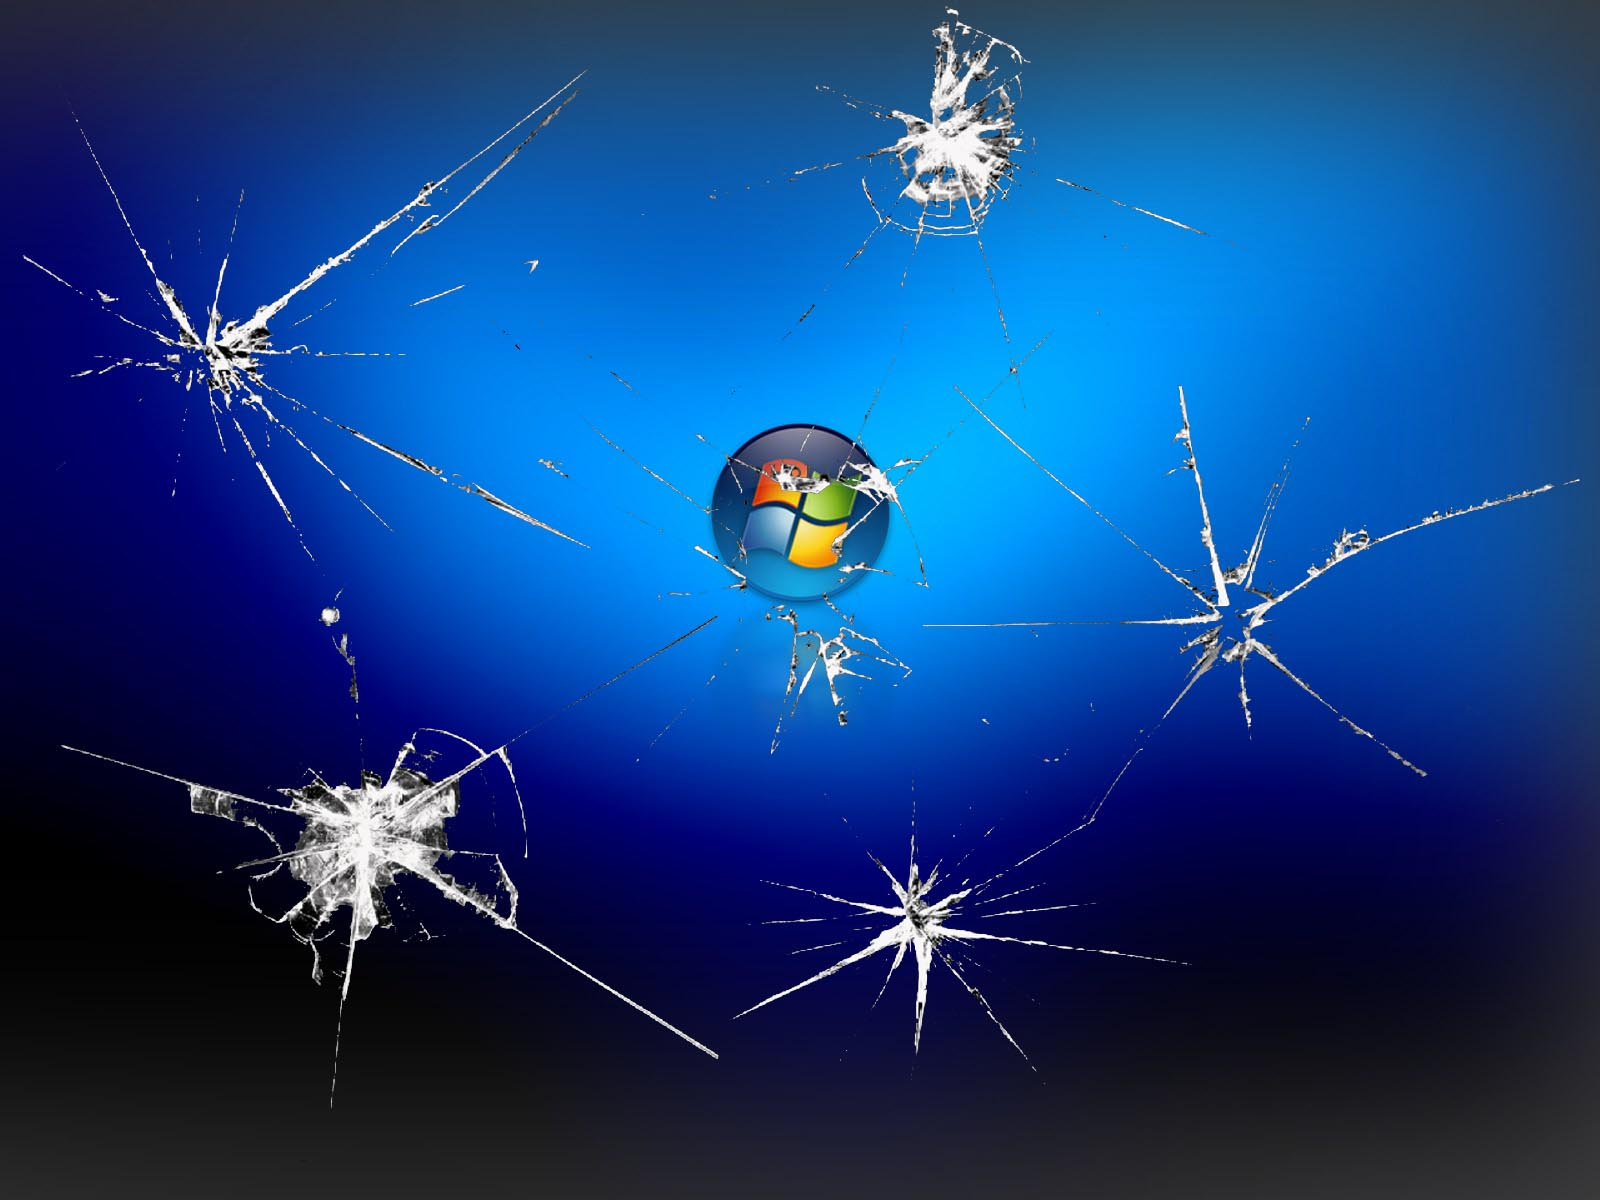 http://4.bp.blogspot.com/-24wtEejtMzw/USUDuAcoc1I/AAAAAAAAF24/PpXdRQ5llB4/s1600/broken_screen_wallpaper_tela+quebrada-cracked-the+bazinga.jpg